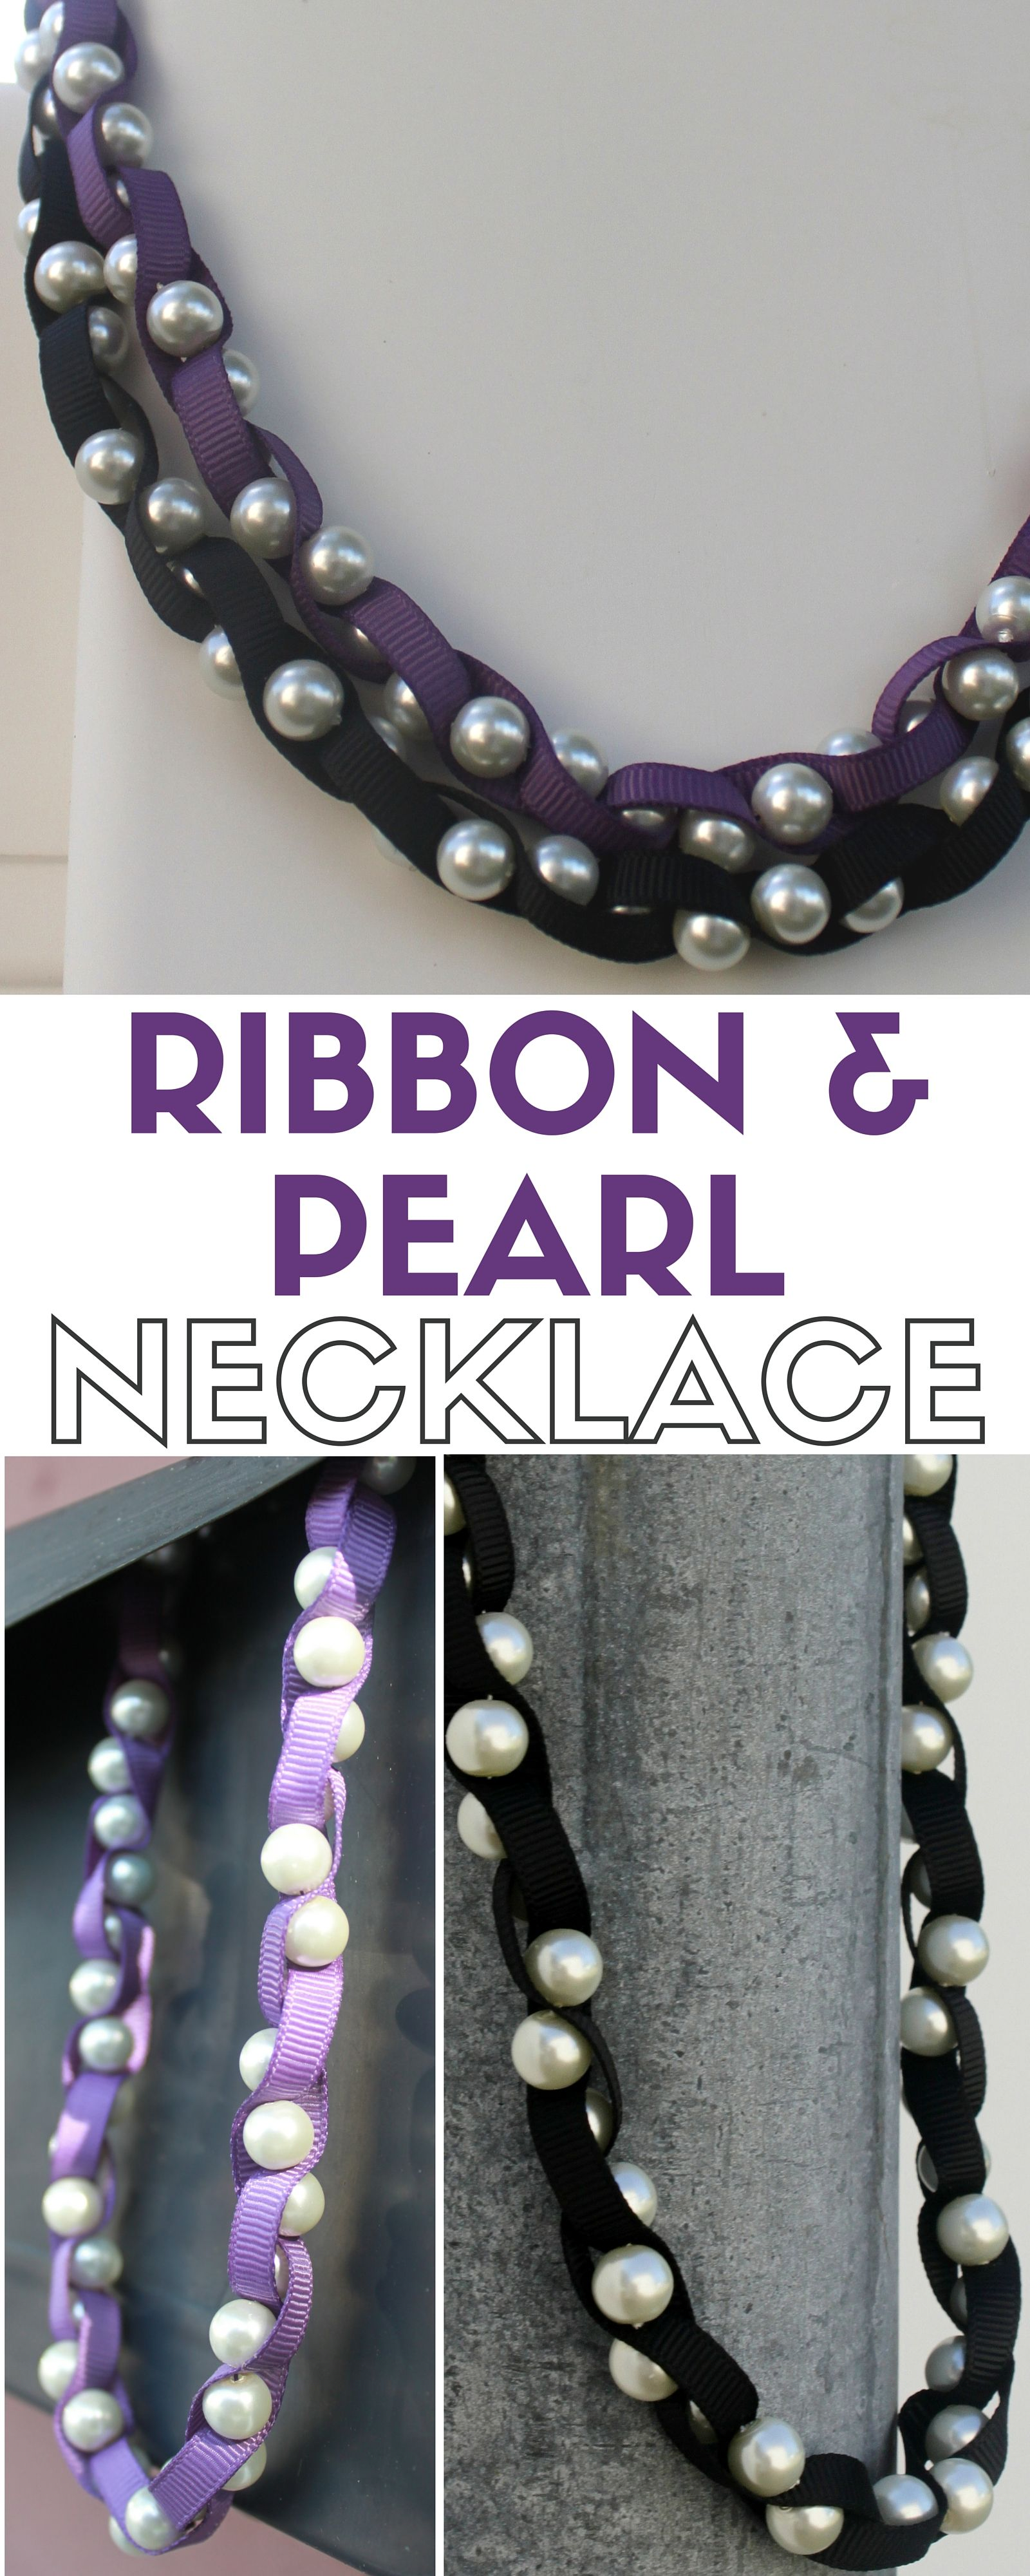 Ribbon and Pearl Necklace Tutorial | Handmade jewelry tutorials ...